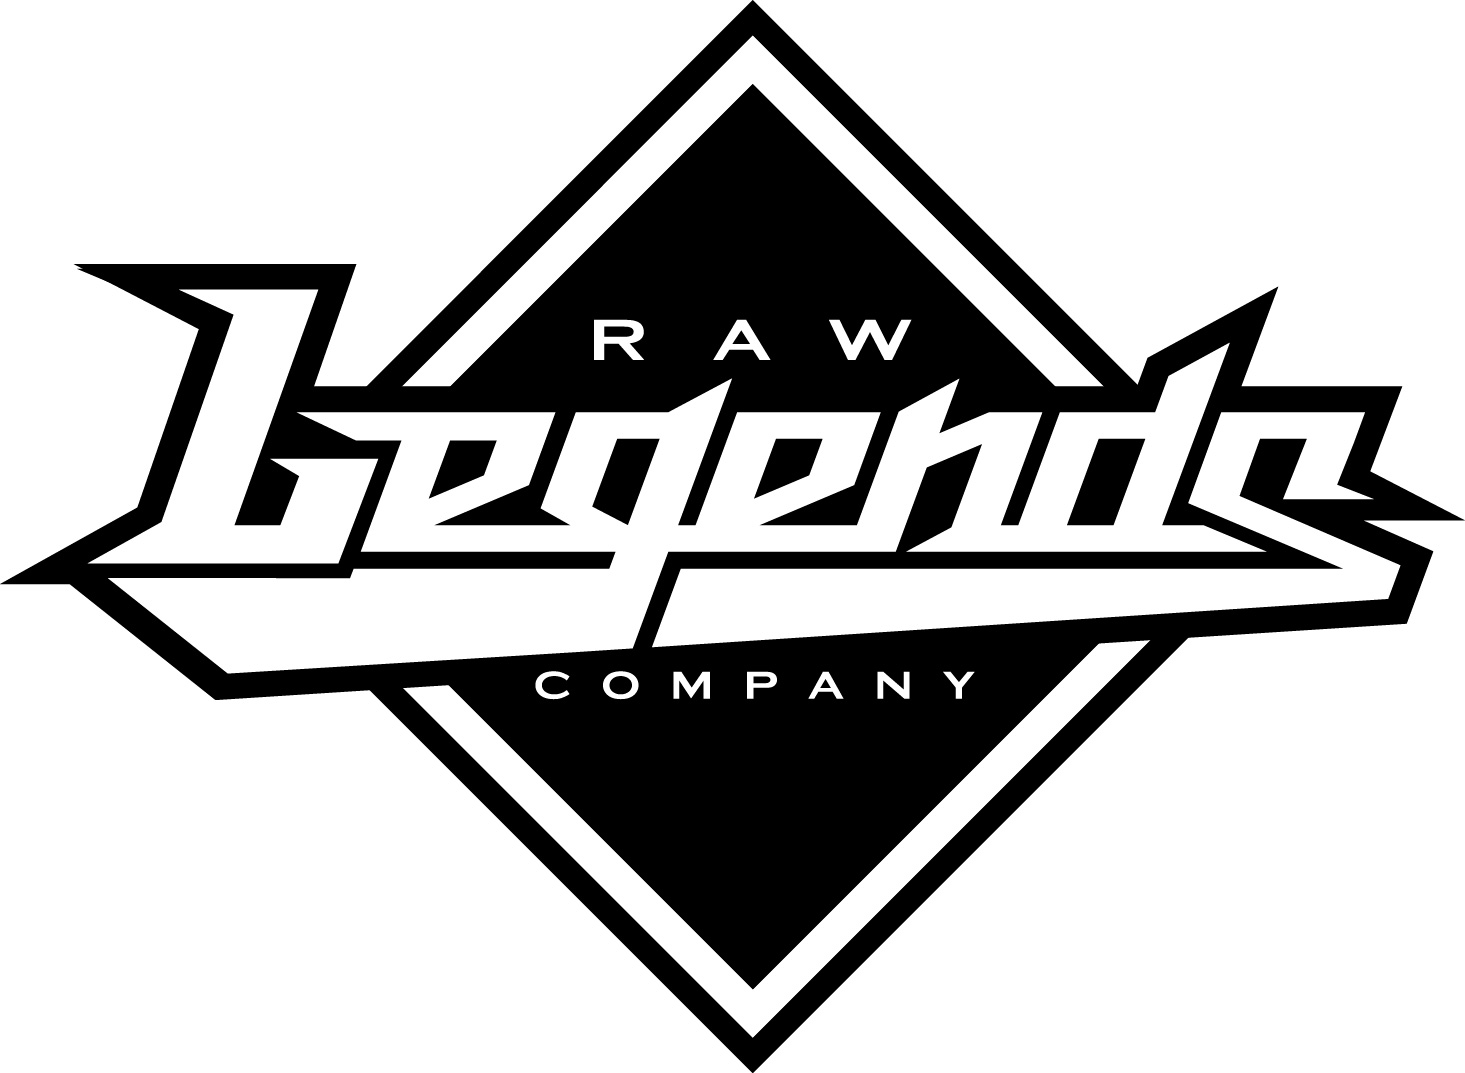 raw legends co – Mr. Angel Perez